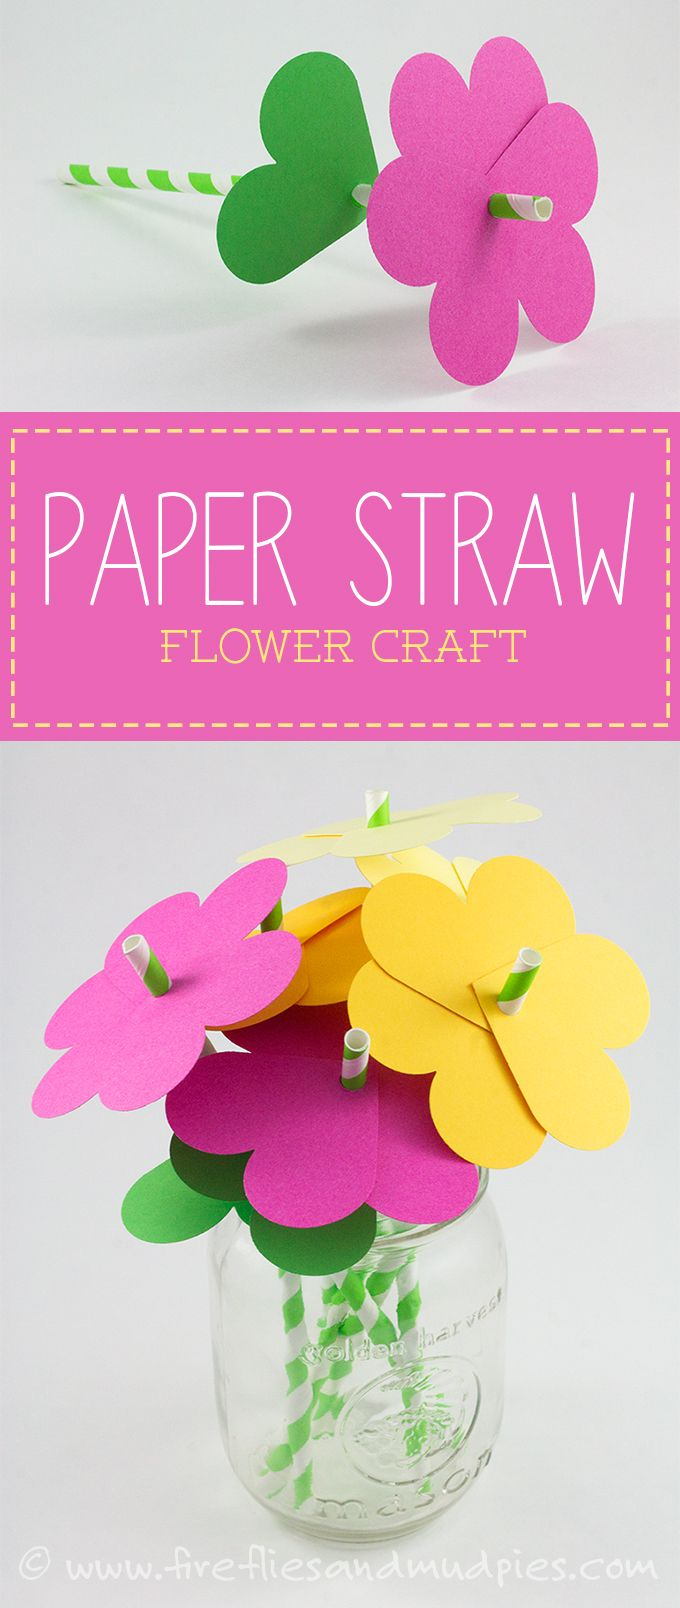 Paper for craft projects - Paper Straw Flowers Mothers Day Craftsflower